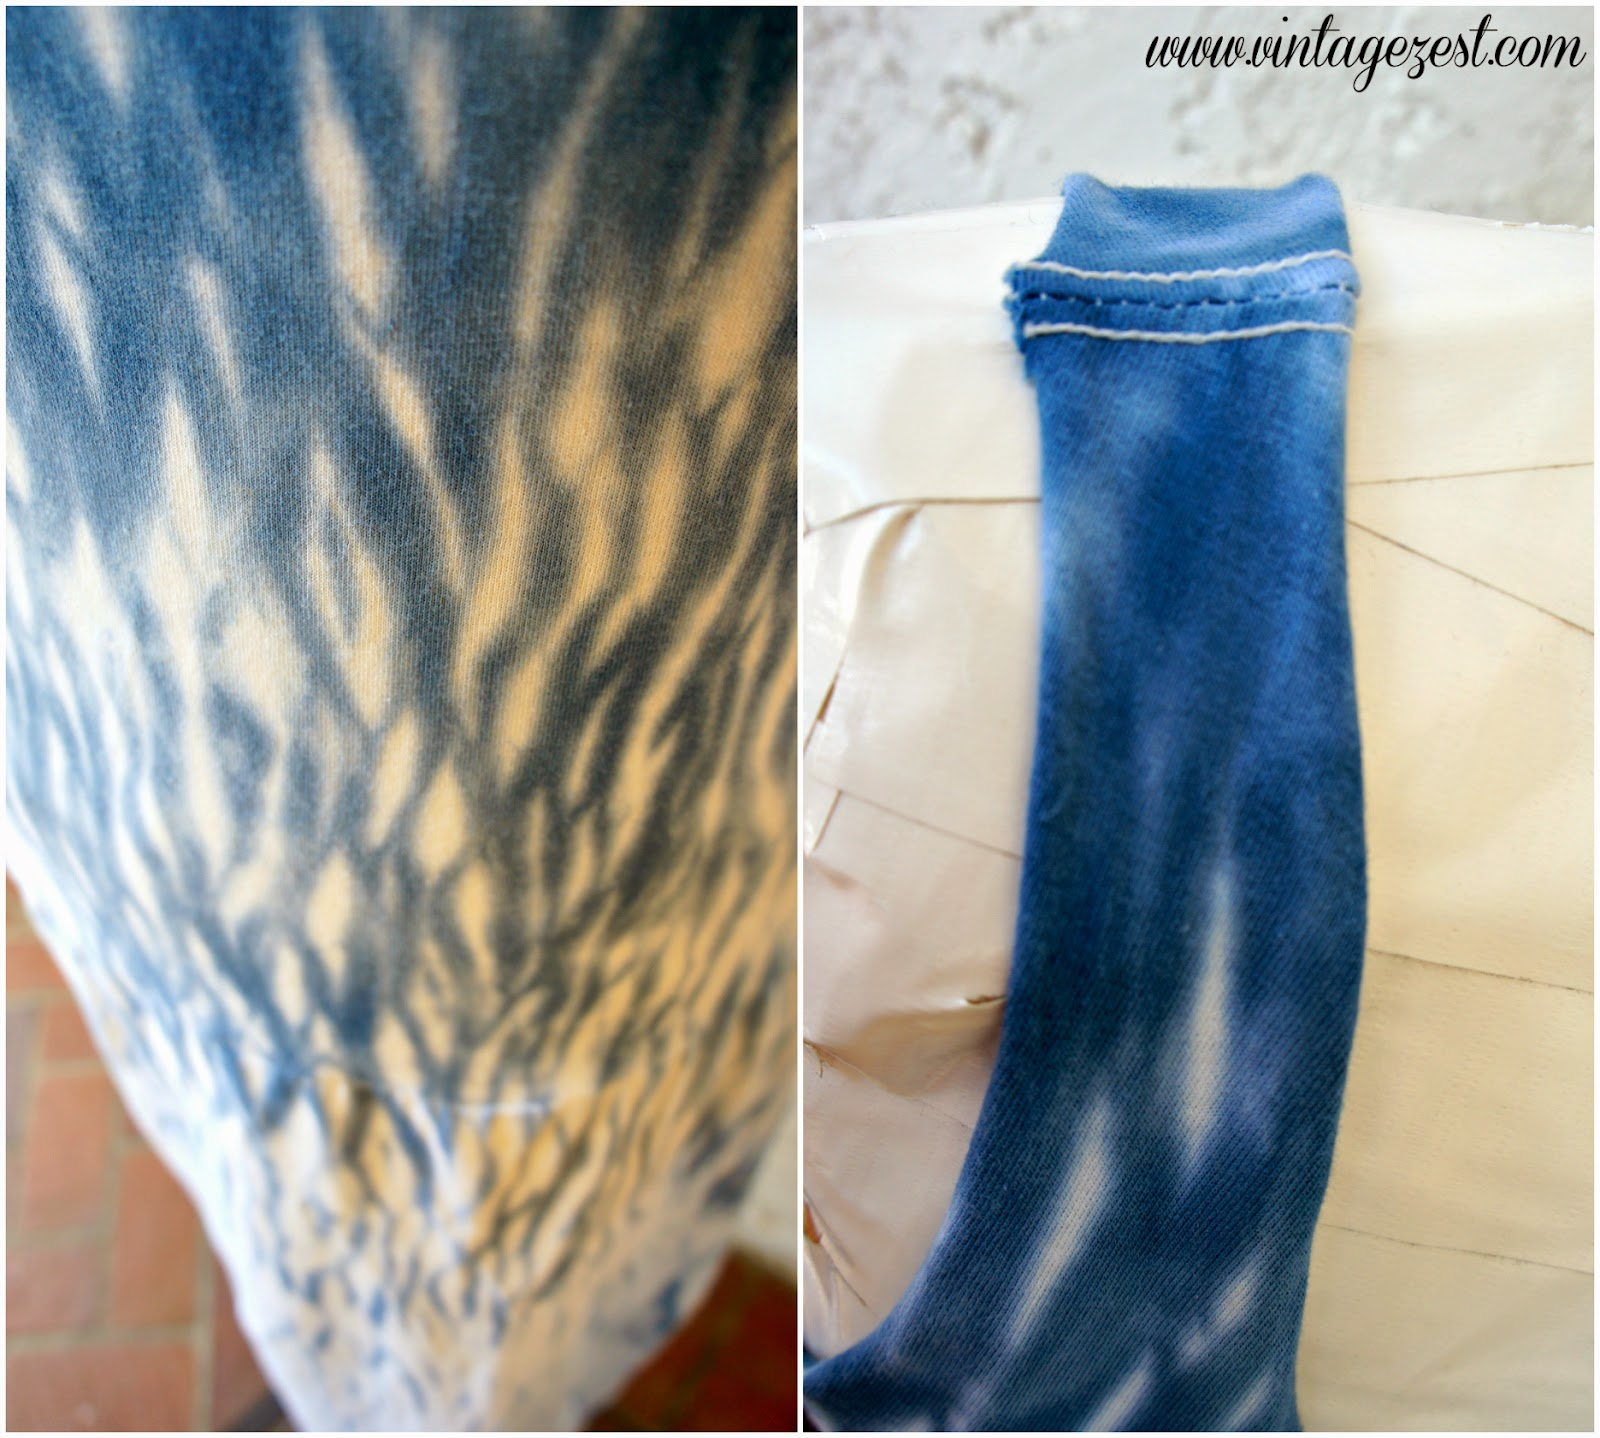 Shibori Print Dress on Diane's Vintage Zest!